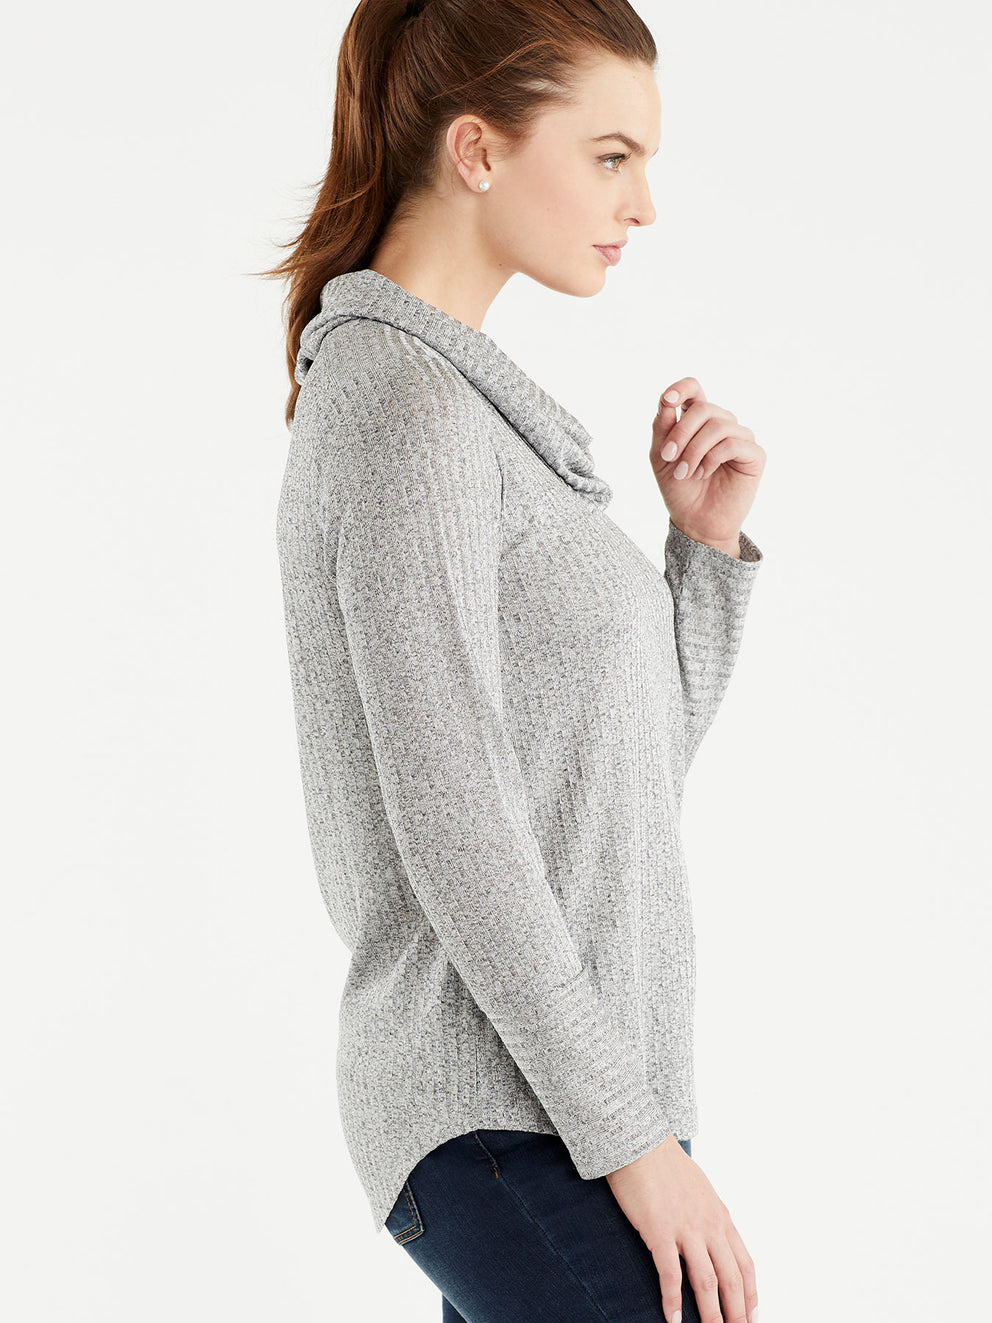 The Jones New York Marled Rib Cowl Neck Top in color Grey - Image Position 2